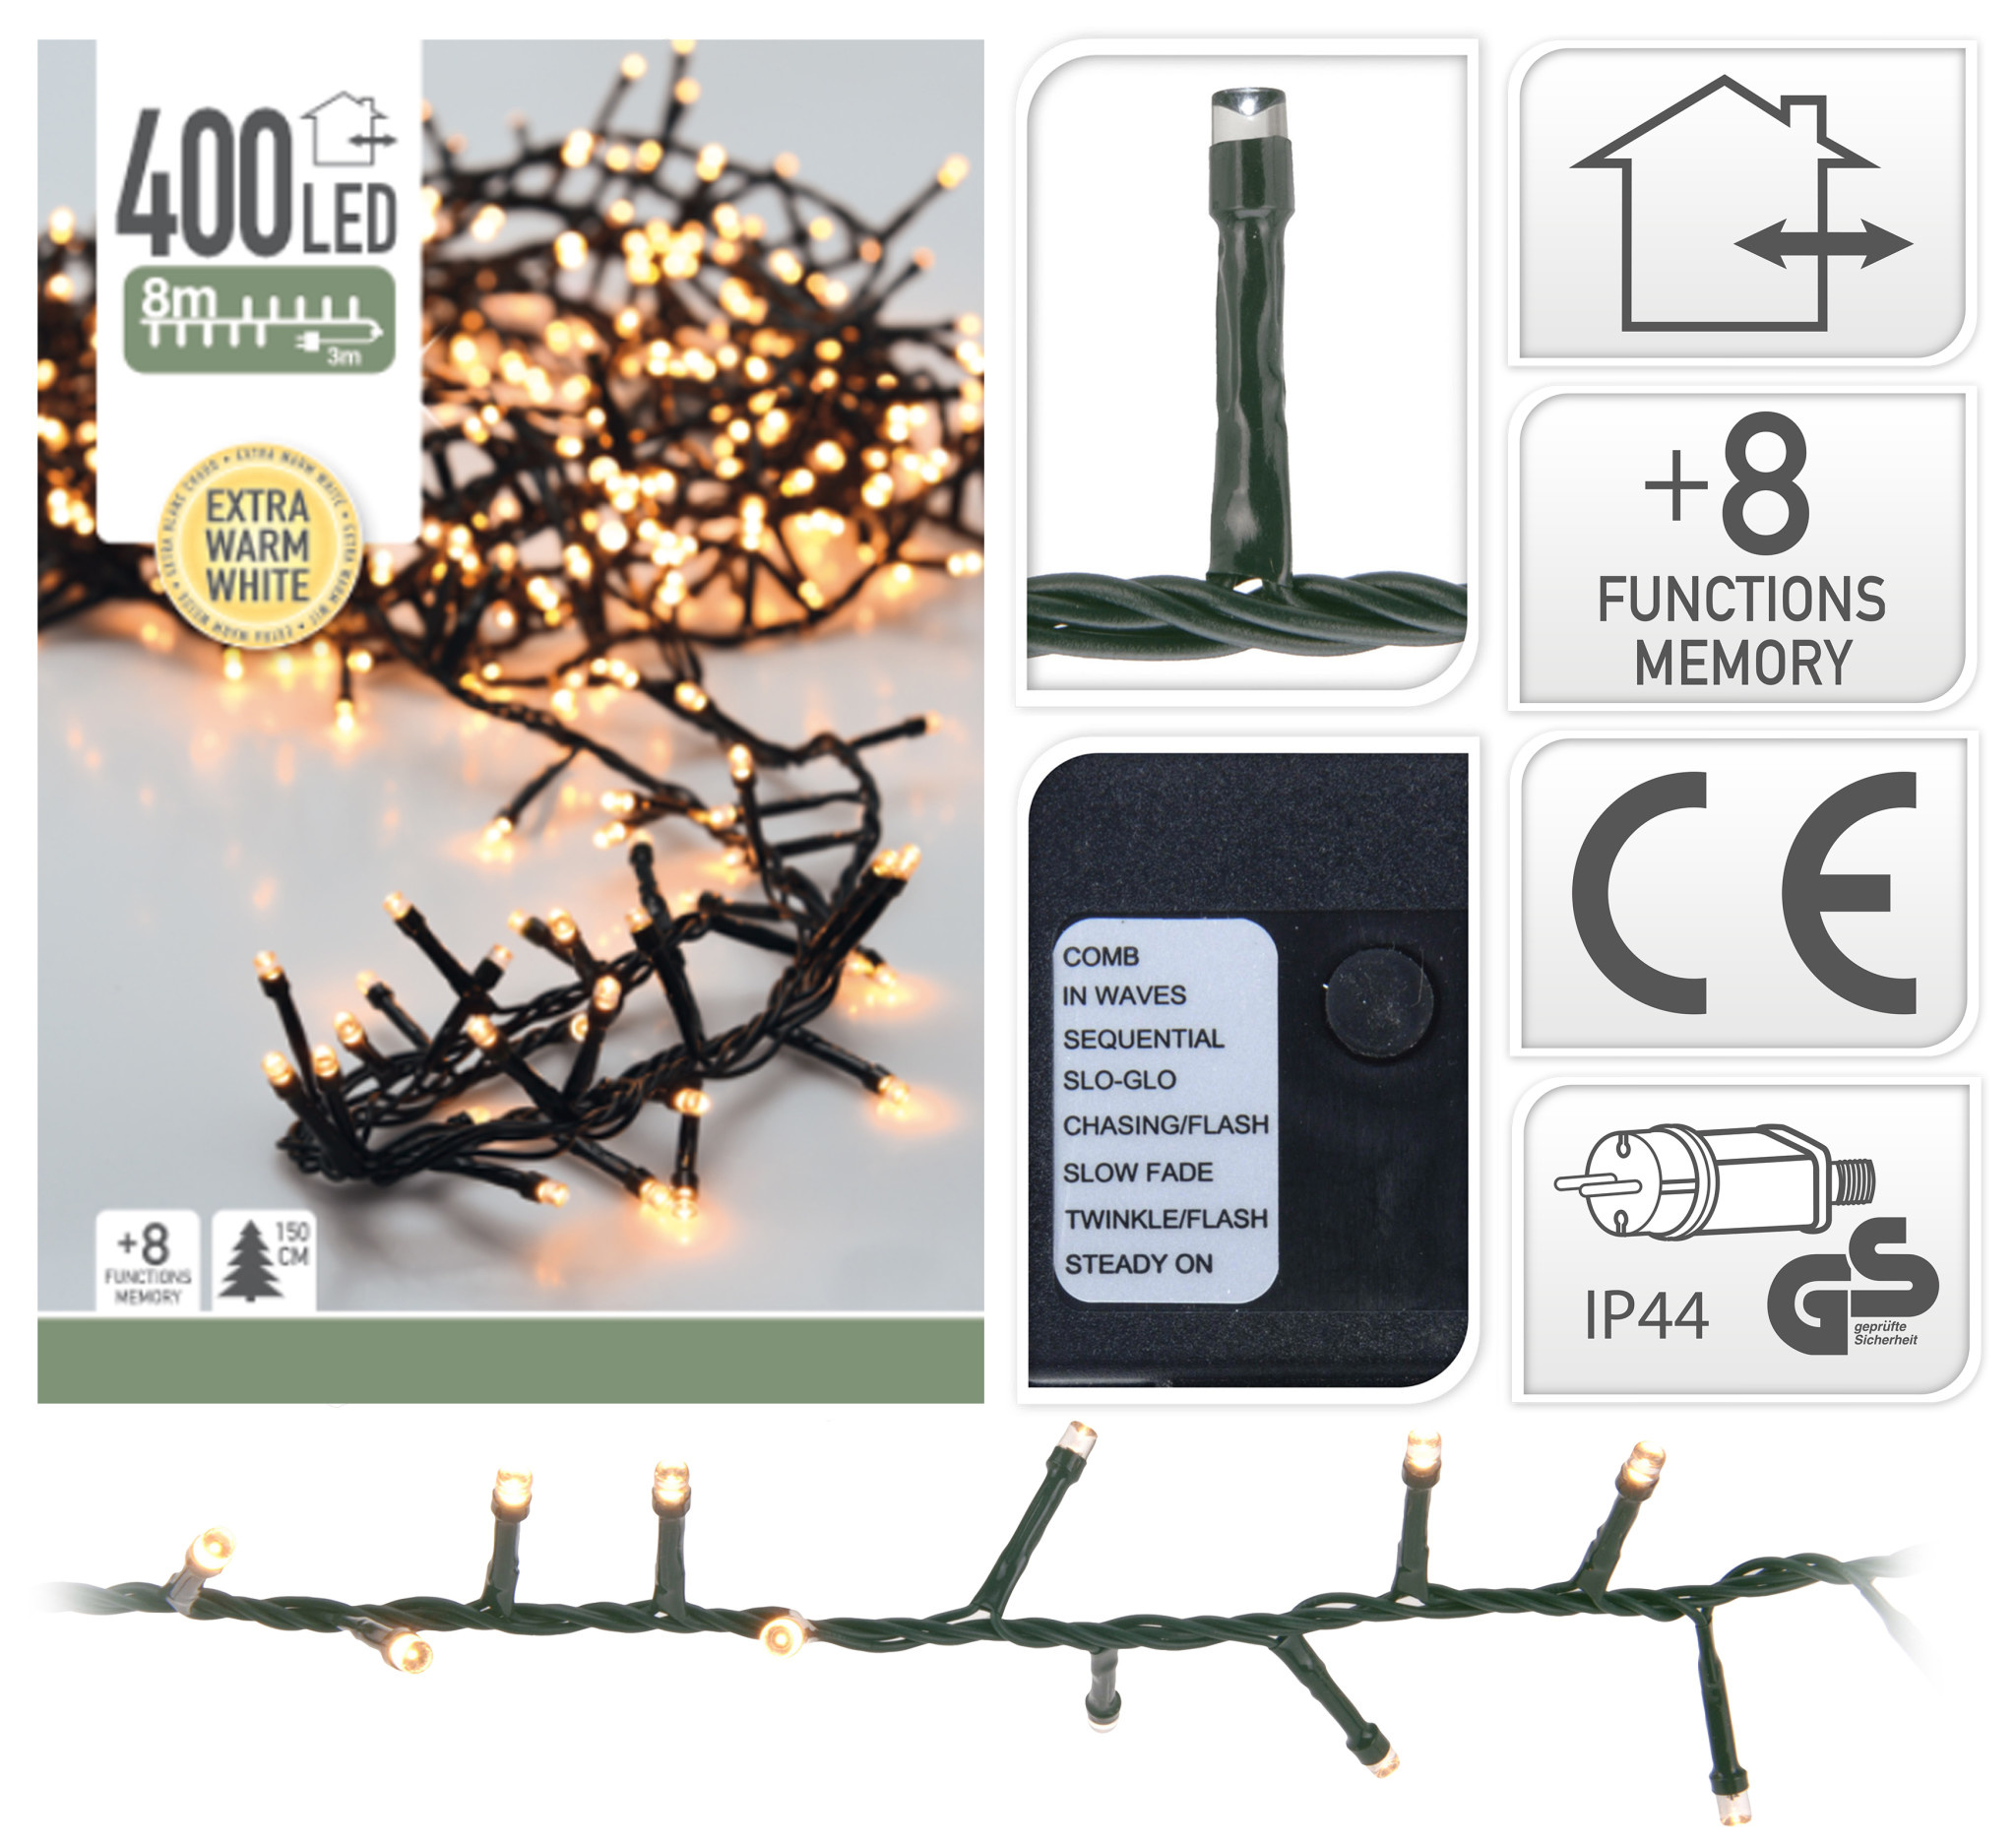 MICROCLUSTER 400LED EXTRA WW-1